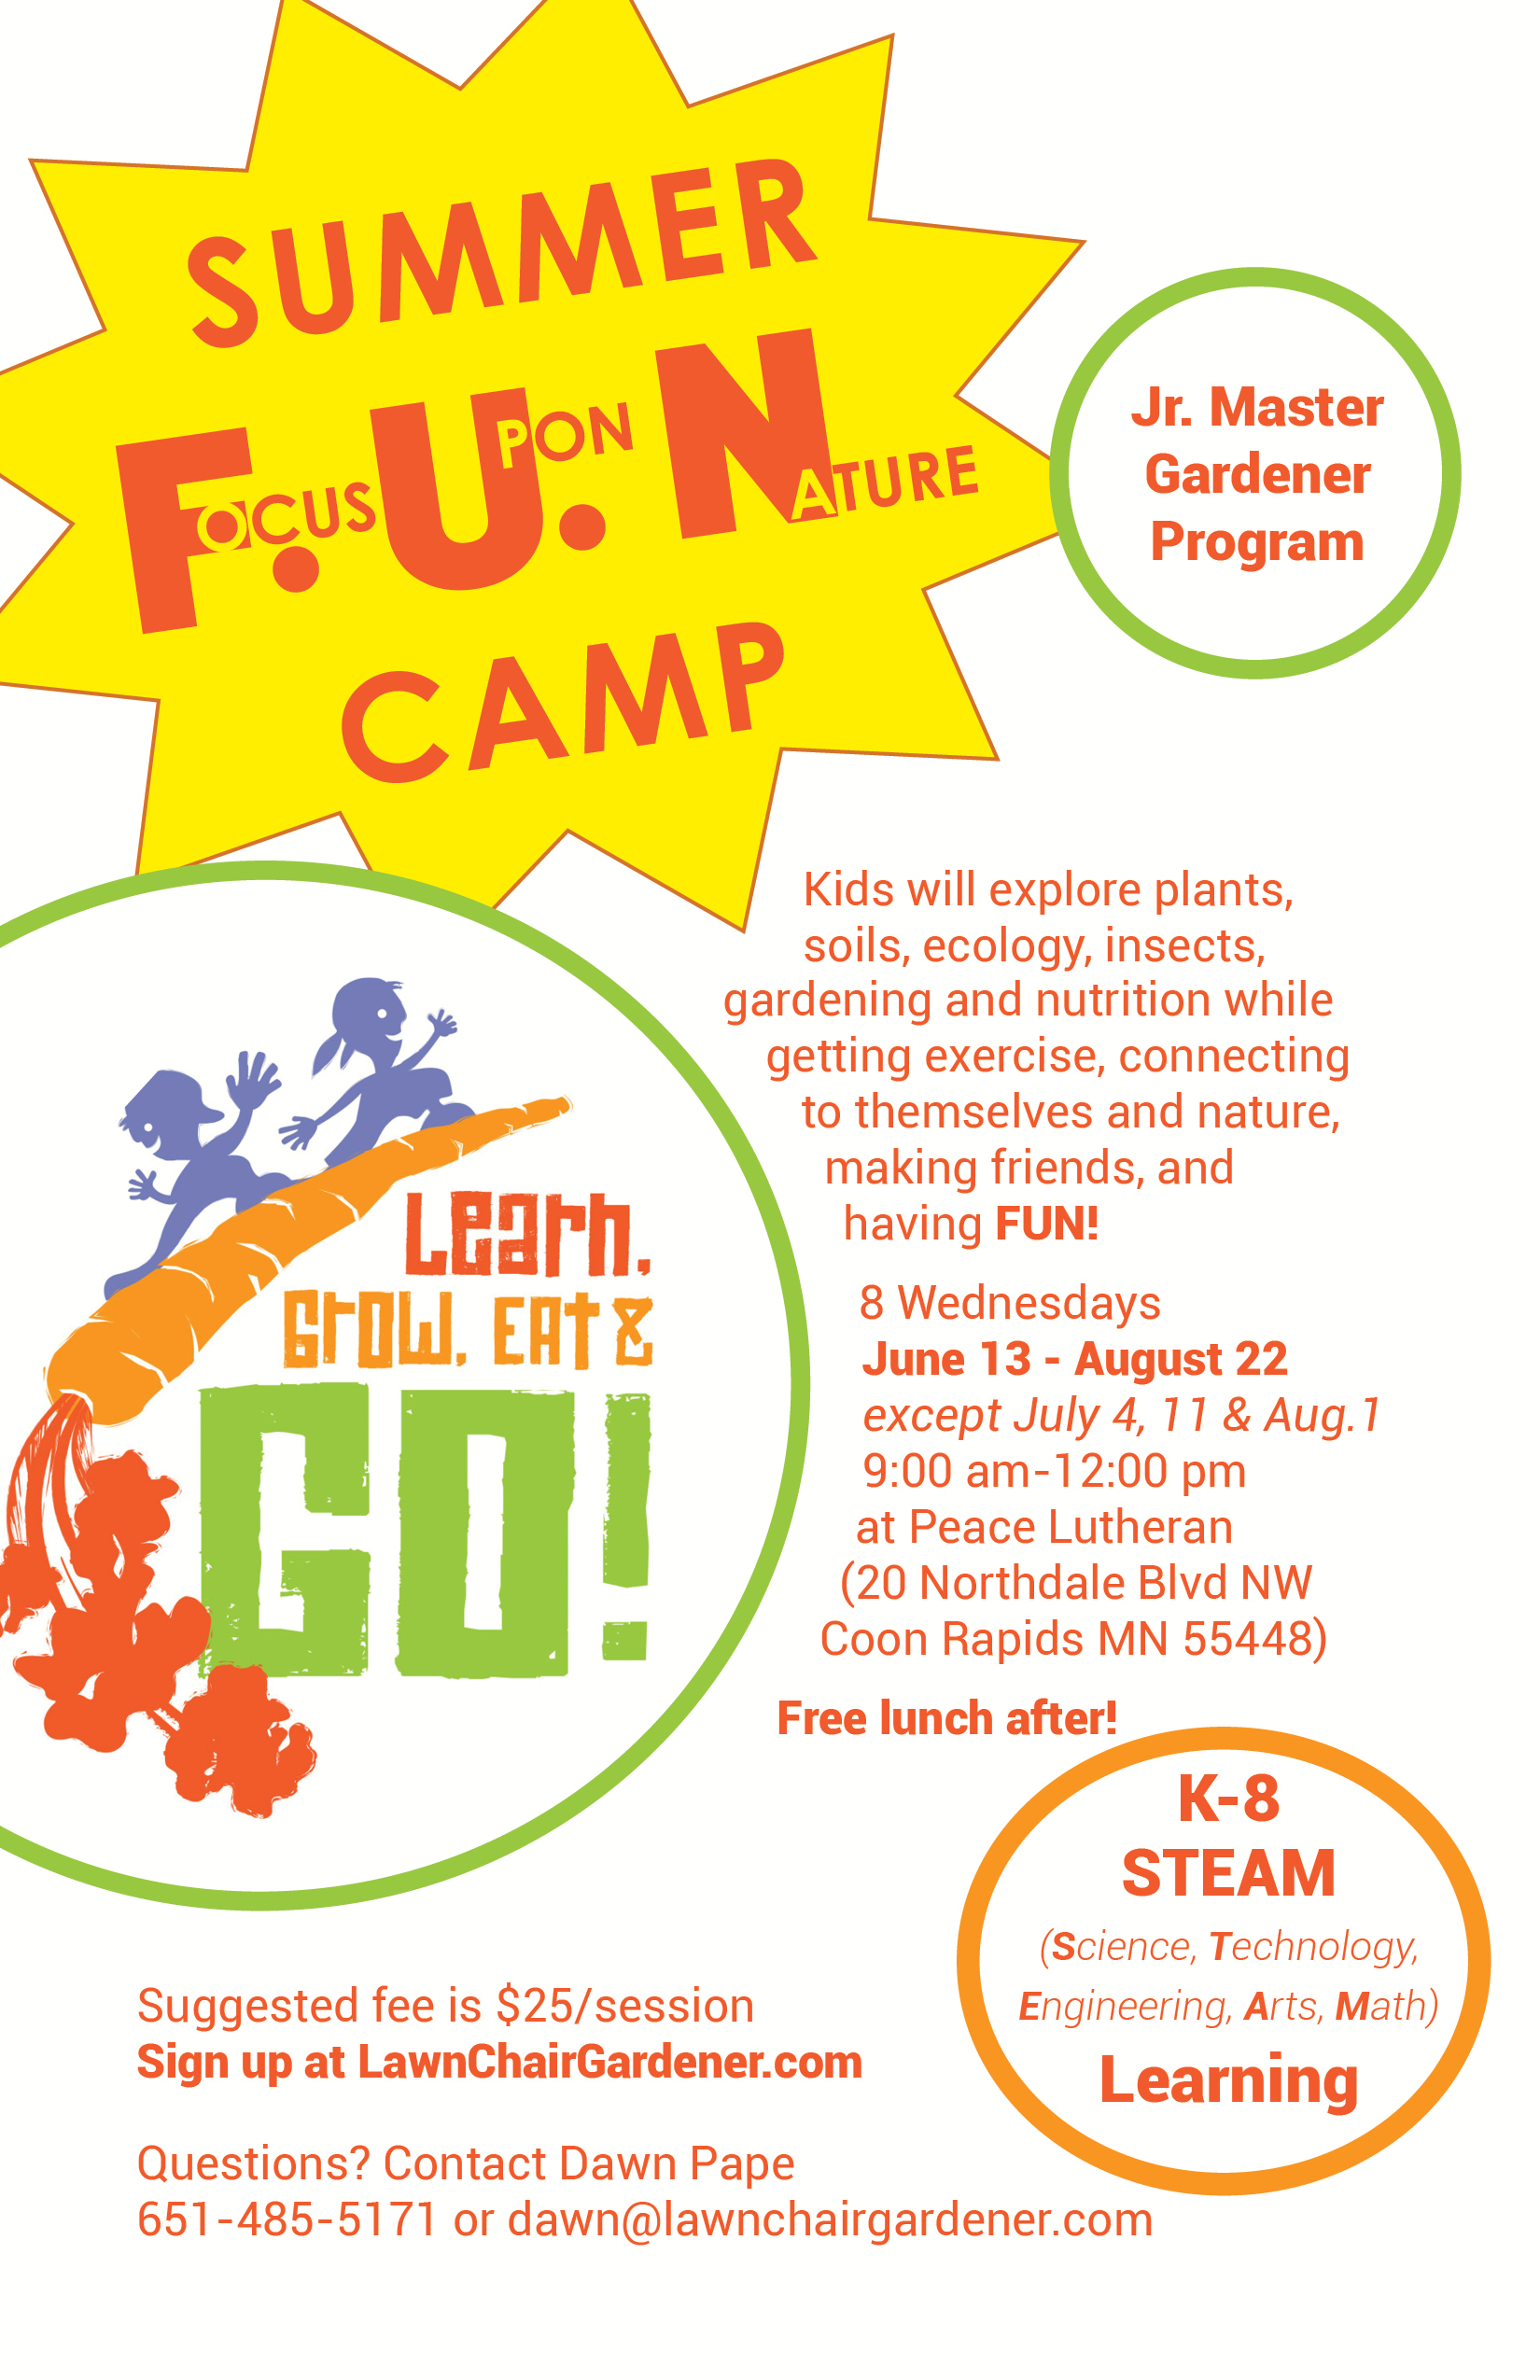 Summer Focus Upon Nature Camp Flyer